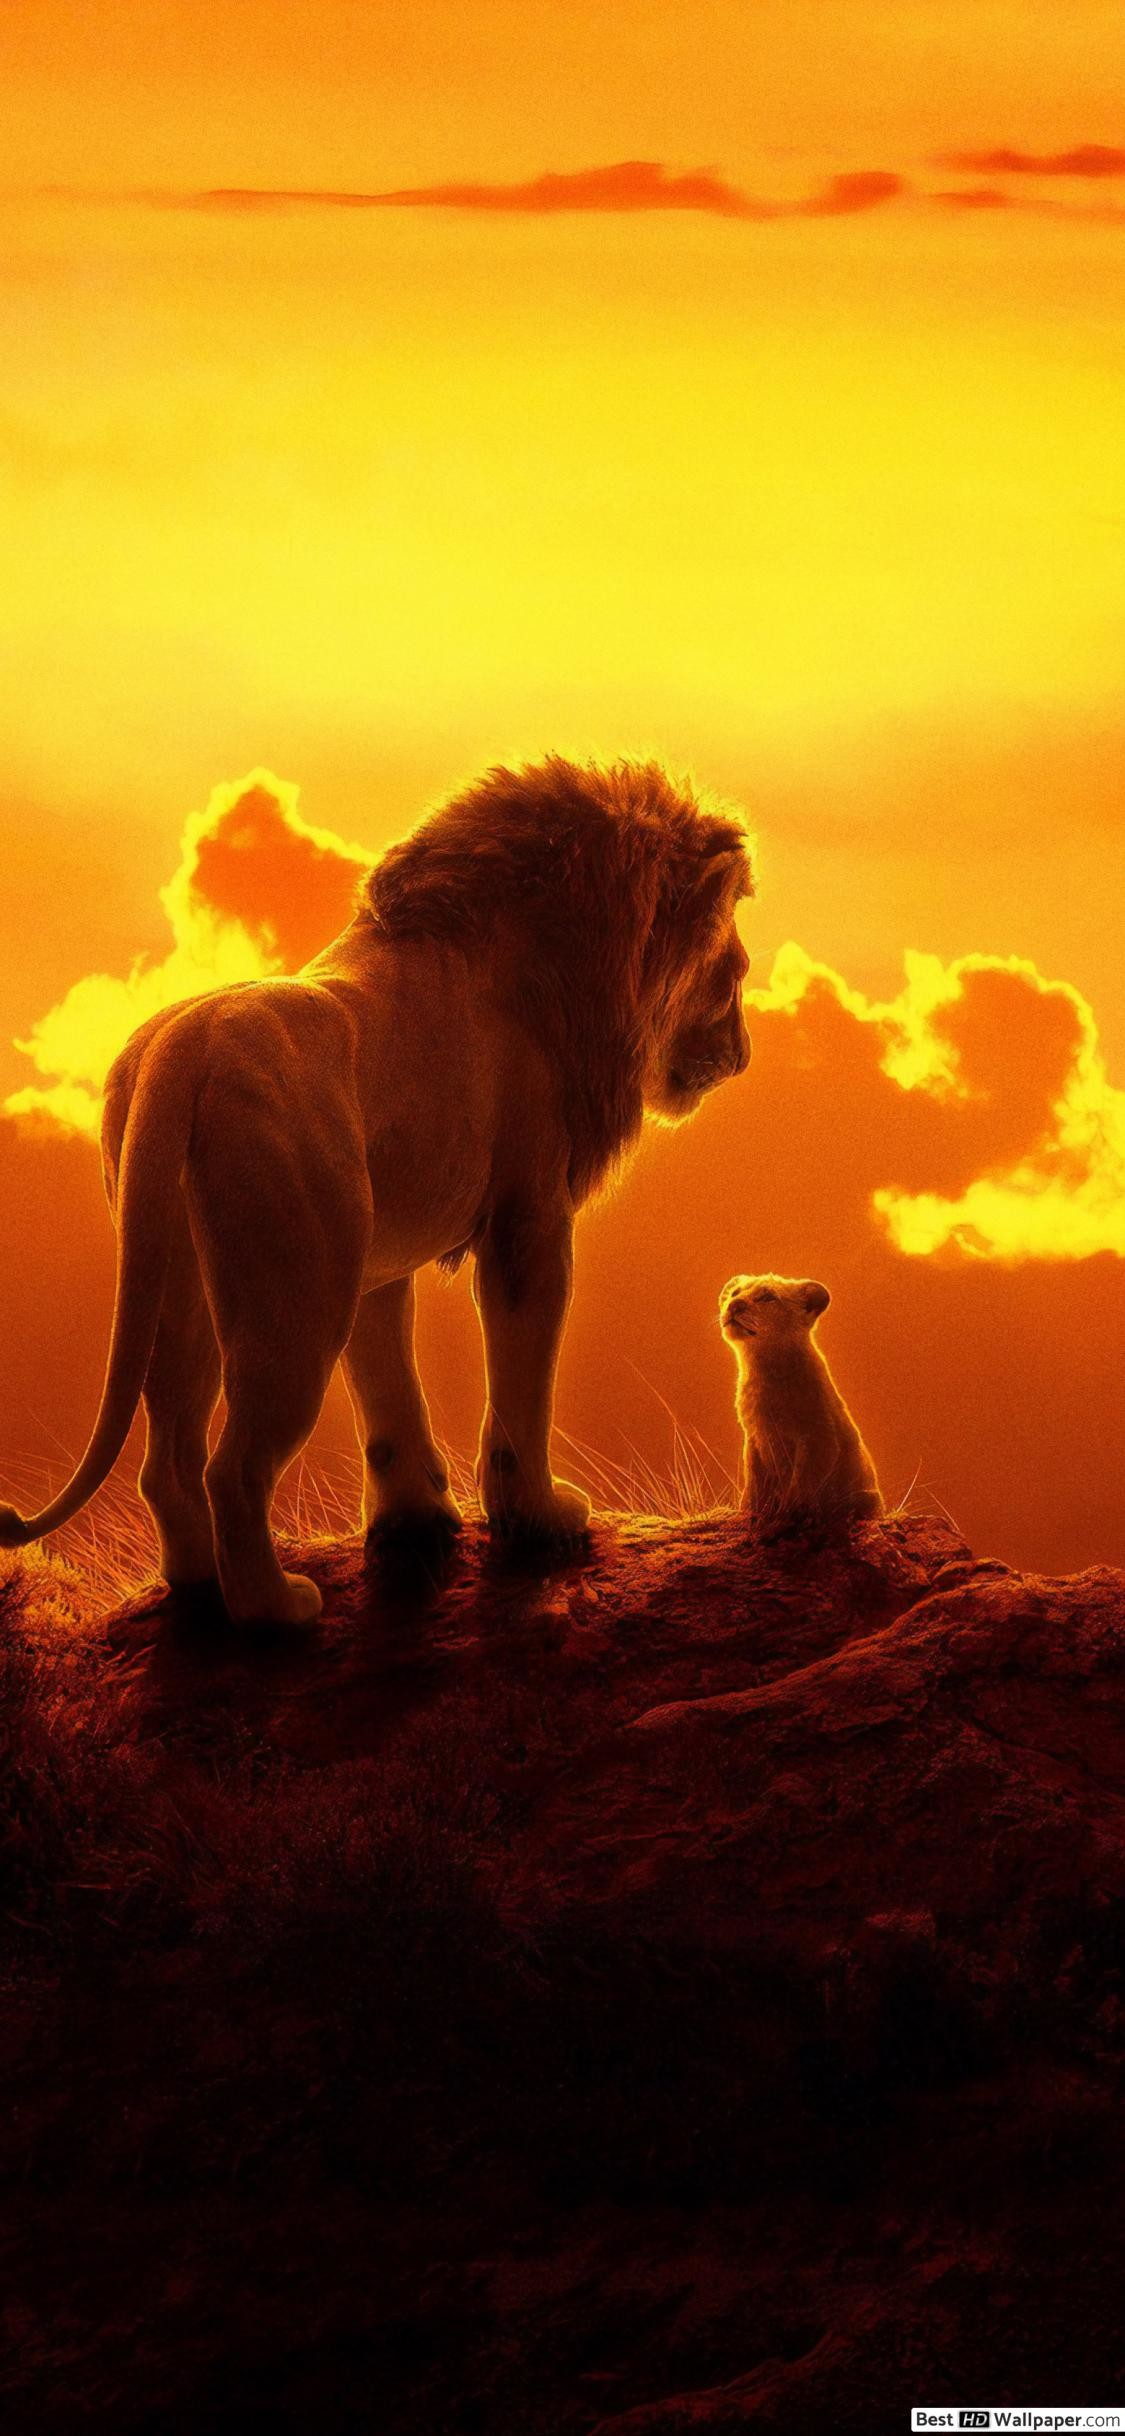 Apple Iphone X Data Src Lion King Iphone Wallpaper Ultra Hd Lion Wallpapers Hd 1125x2436 Download Hd Wallpaper Wallpapertip